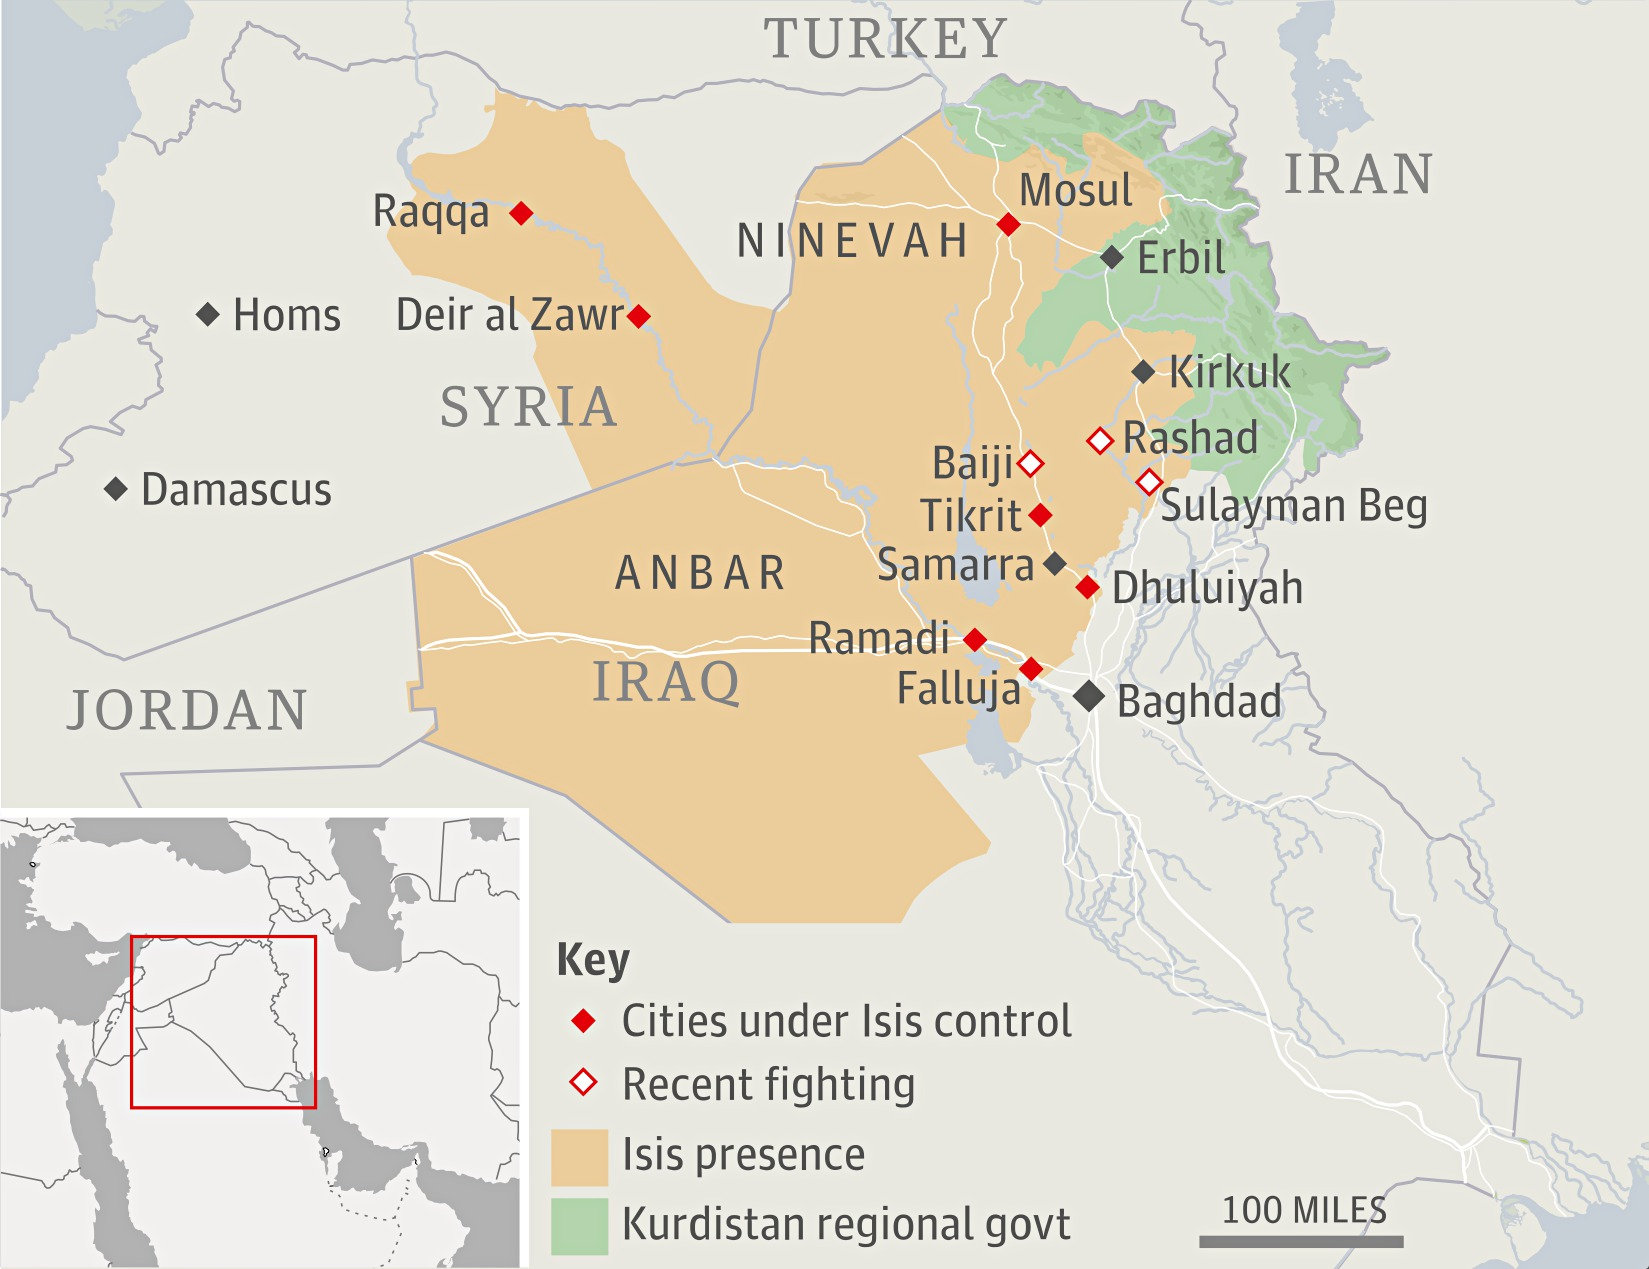 Viable Opposition The Syrian Refugee Camps ıom ıraq Rapid